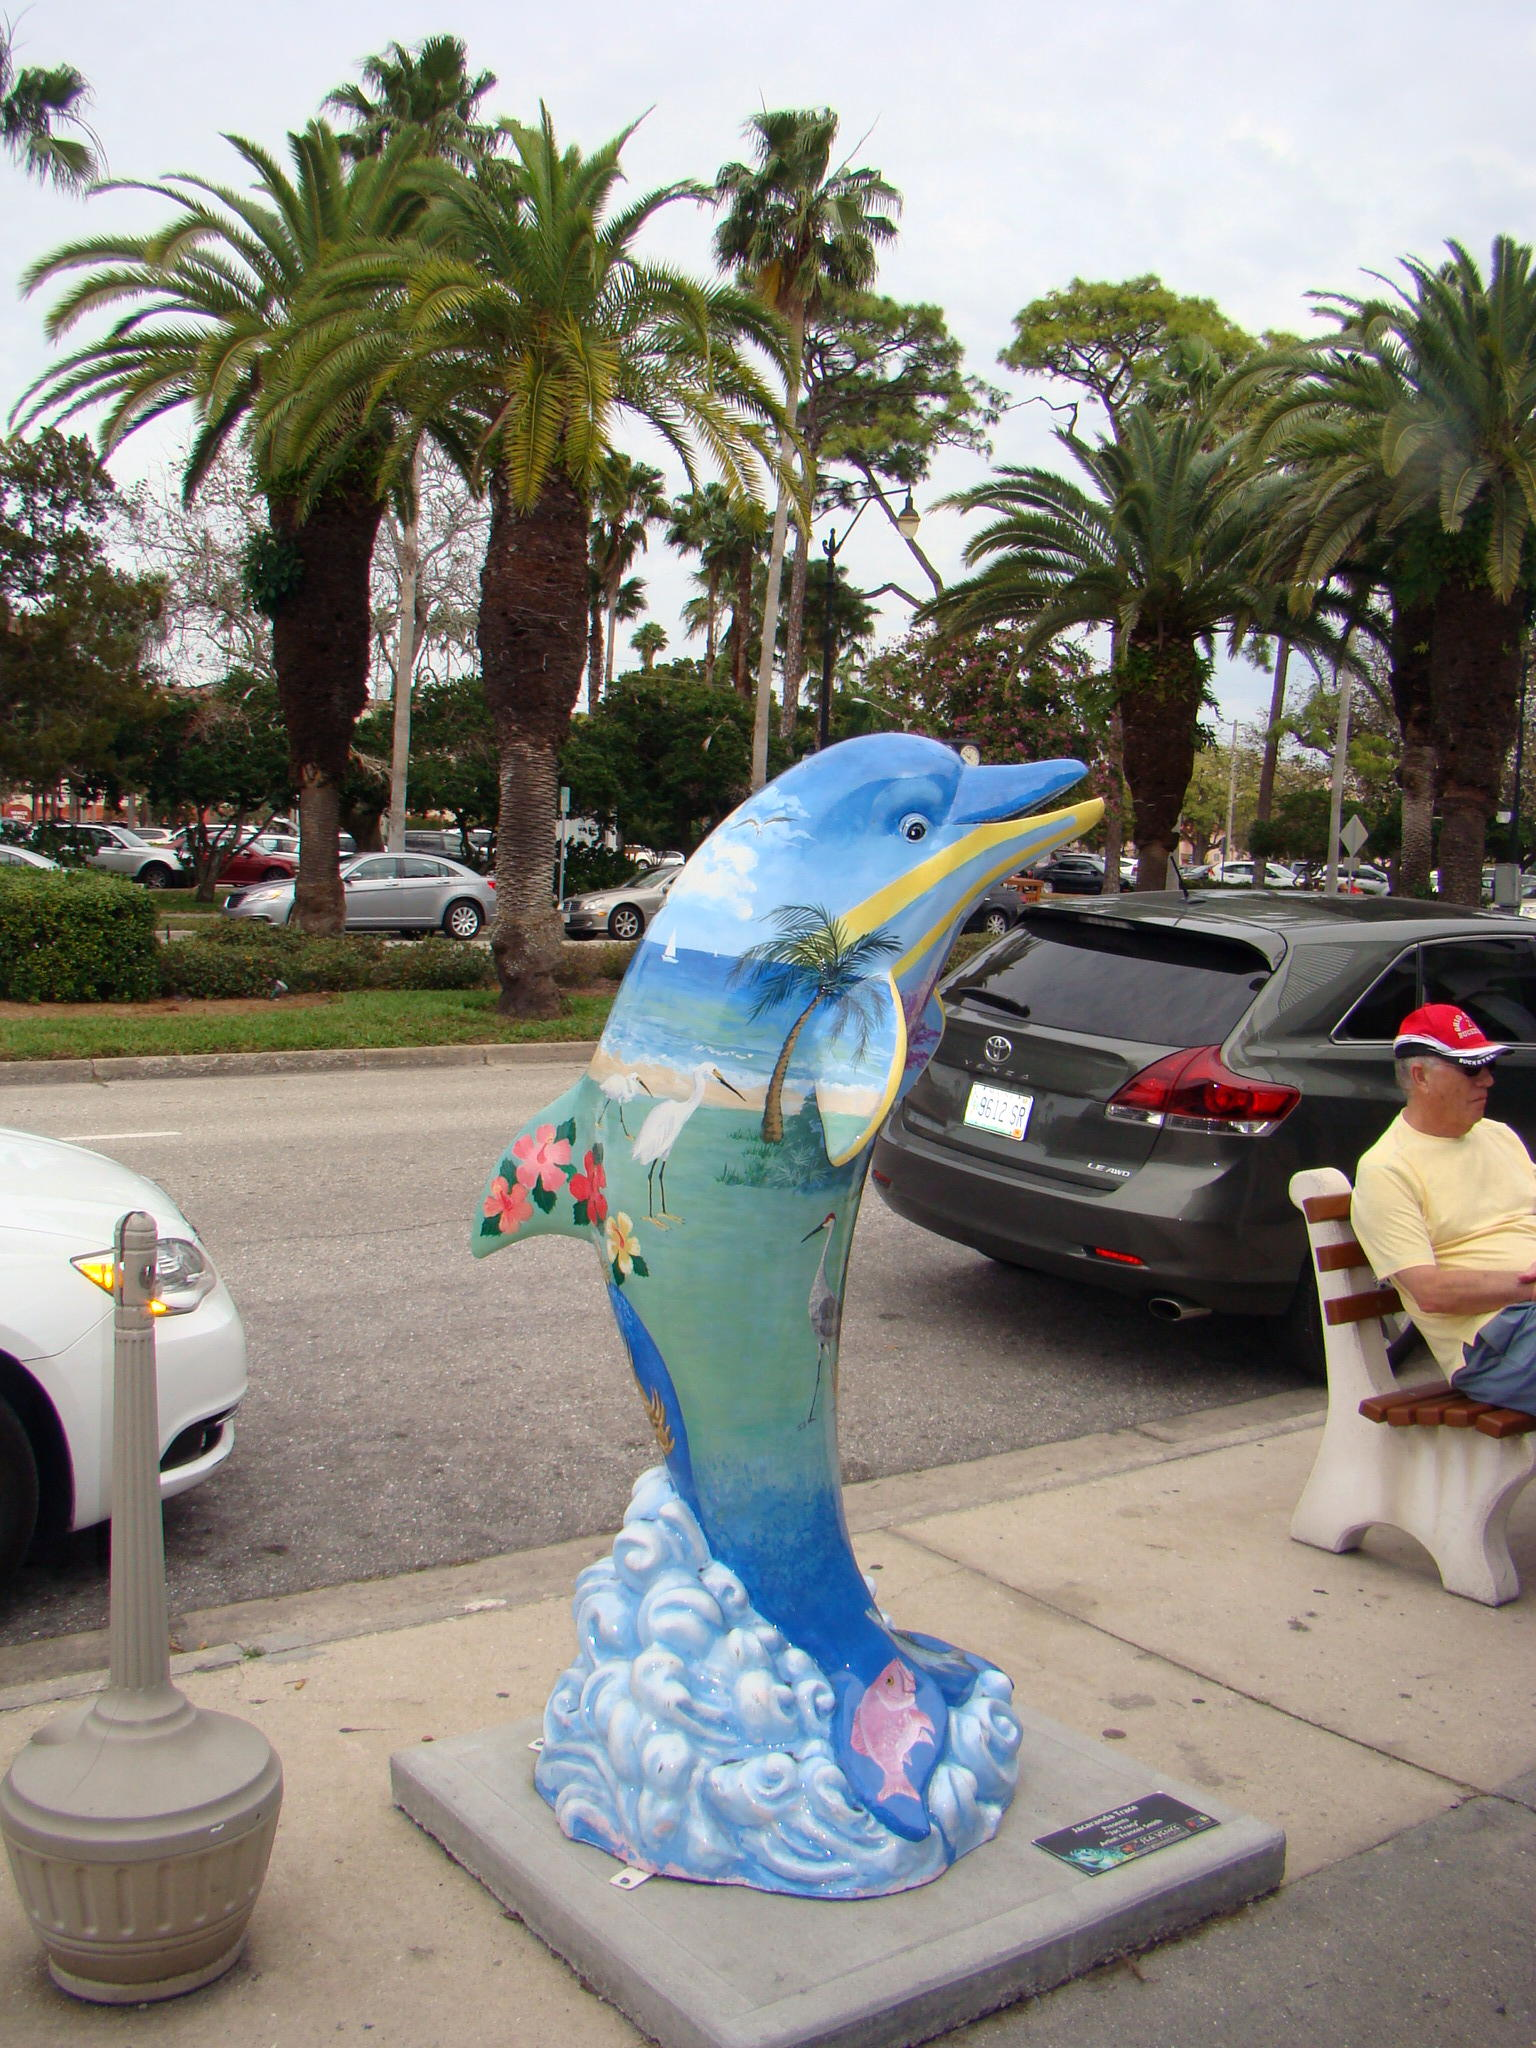 Attractive Dolphin Statues Line The Streets As Part Of Sea Venice Arts Project.